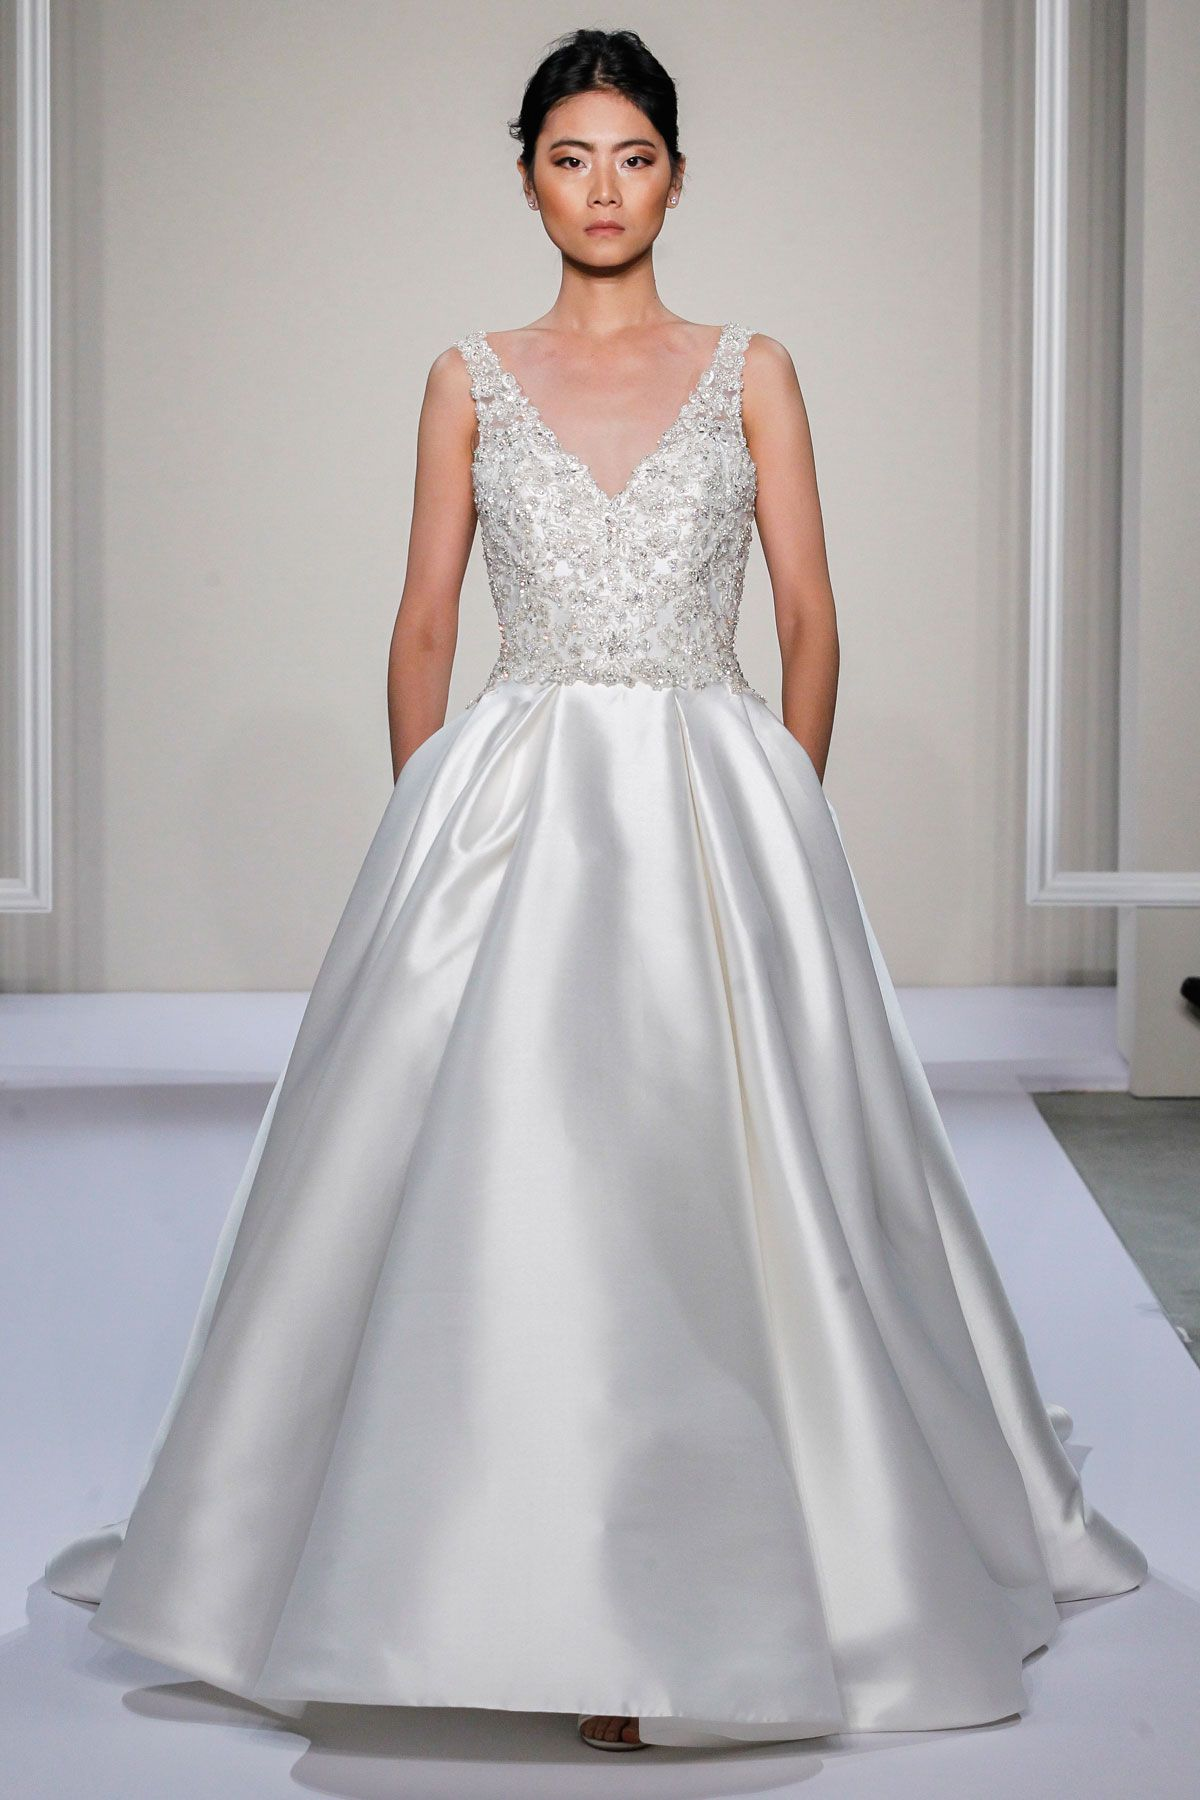 NYC-Inspired Gowns by Dennis Basso for Kleinfeld Bridal 2016